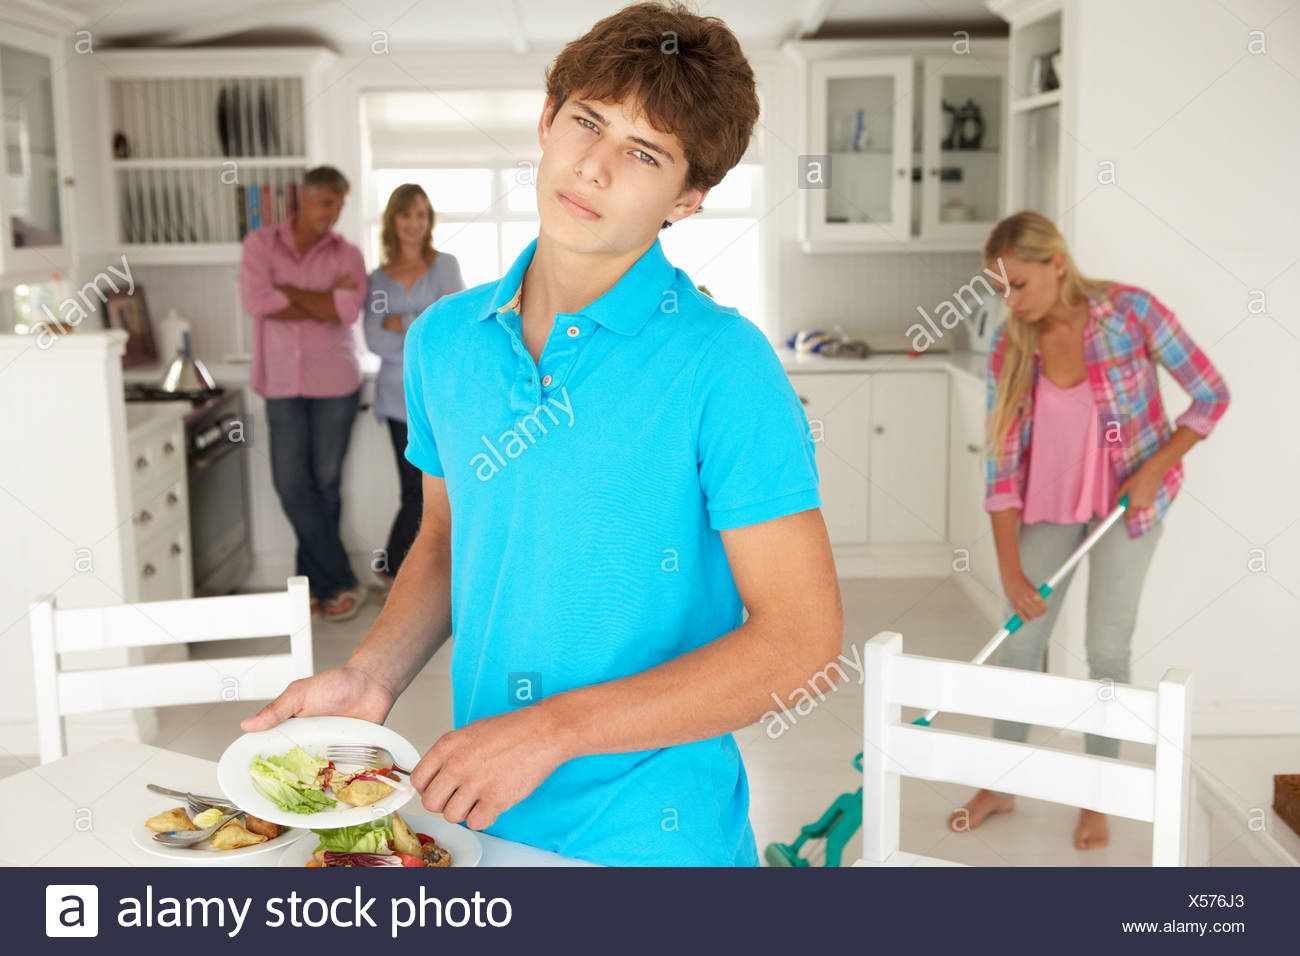 Boy Doing The Dishes Stock Photos & Boy Doing The Dishes Stock ...